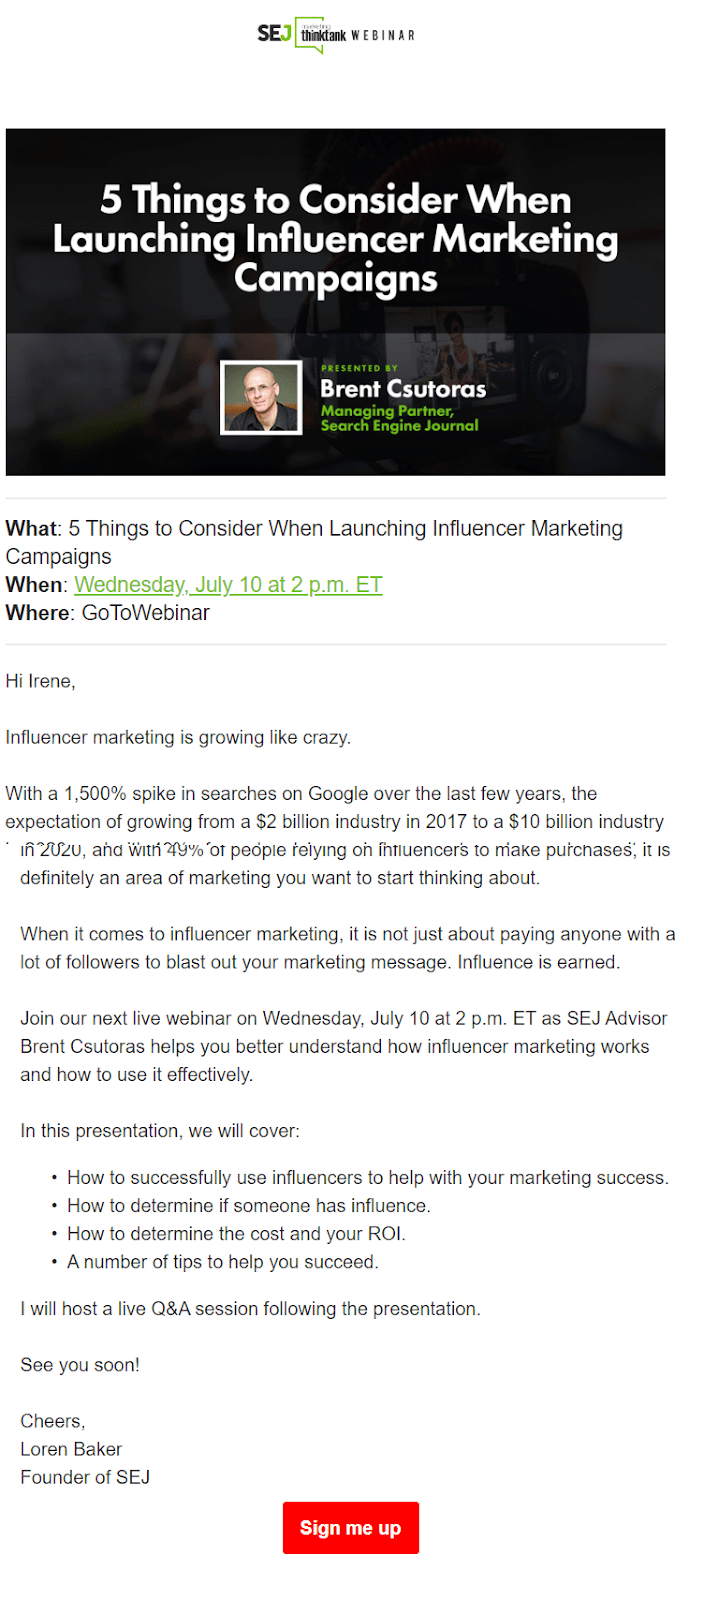 A webinar invitation email sent by SEJ